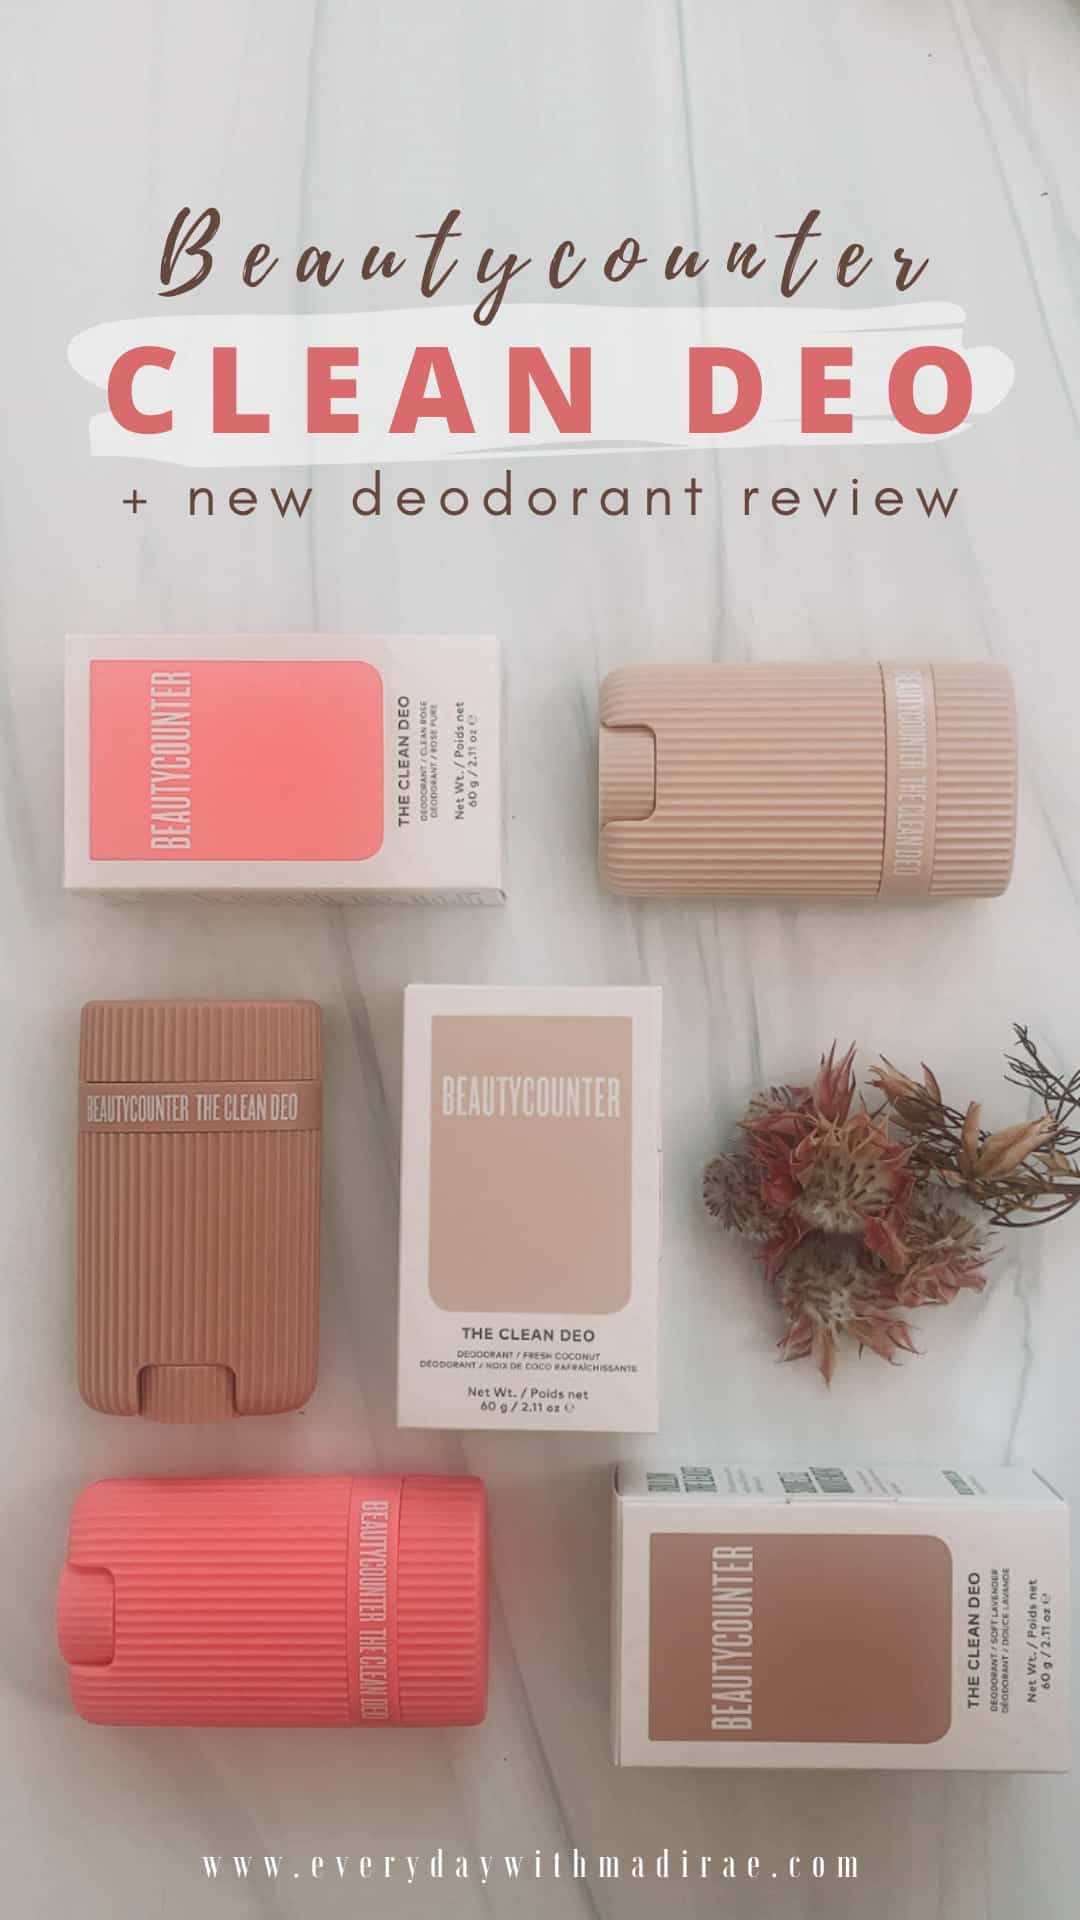 Sharing my honest review of Beautycounter's new Clean Deo..a clean, refillable, deodorant option, available in three beautiful scents!